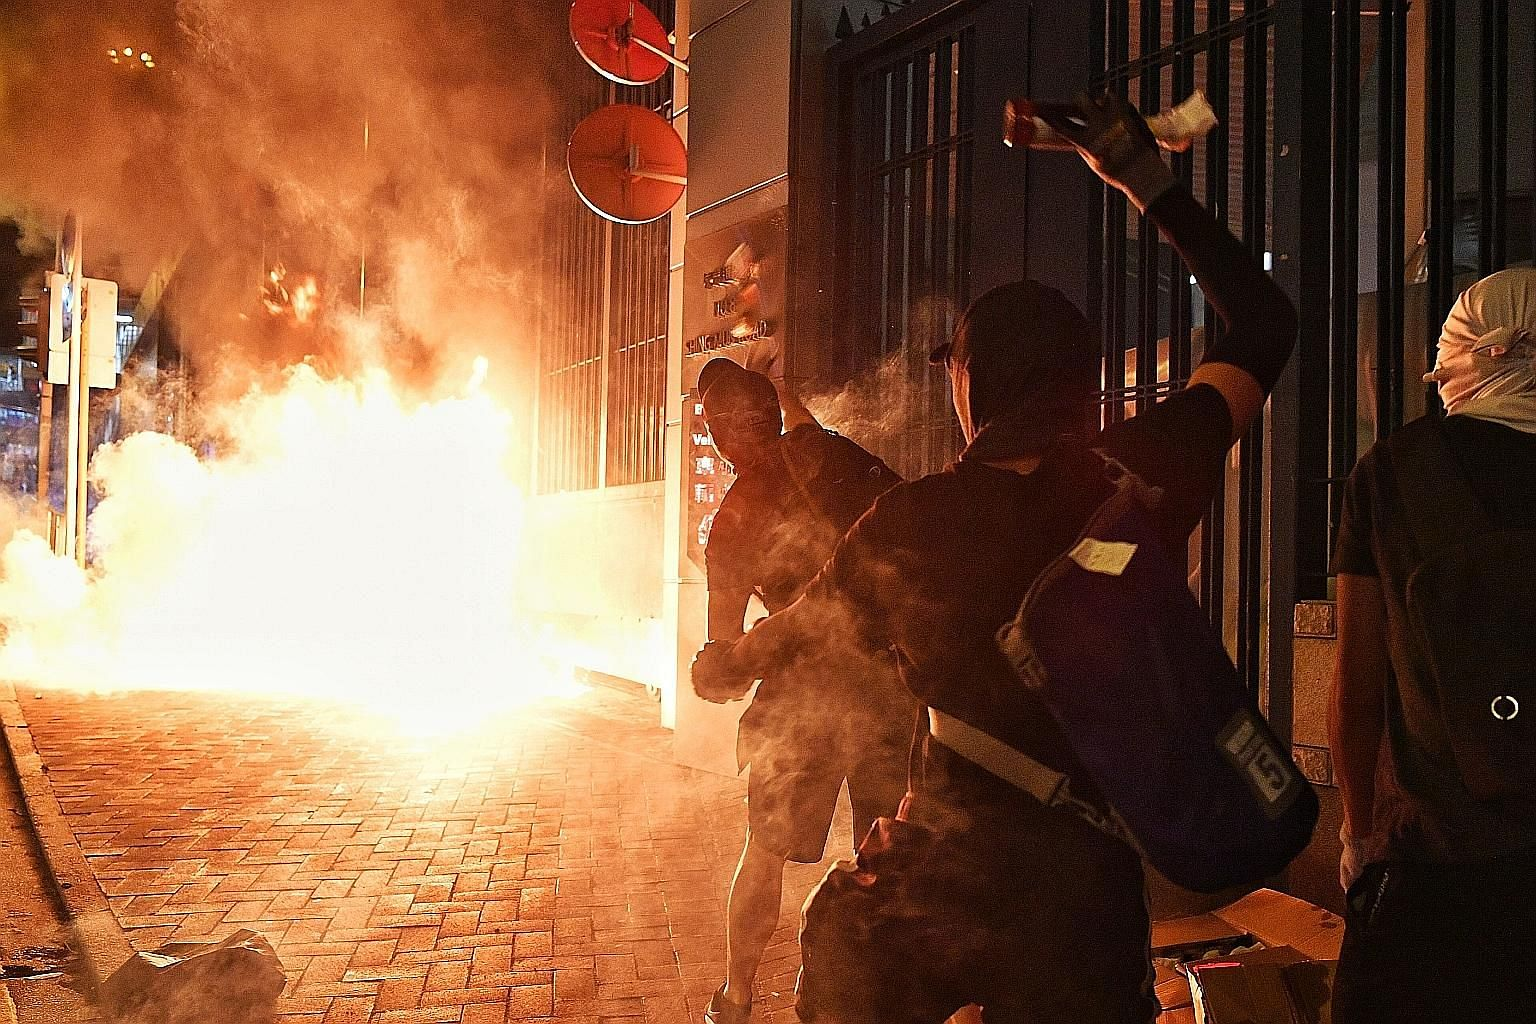 Protesters throwing Molotov cocktails at a police station in Tsuen Wan on Oct 2. The unrest in Hong Kong, sparked some five months ago by a legislative Bill that would have formalised extradition to mainland China, has since morphed into a far broade